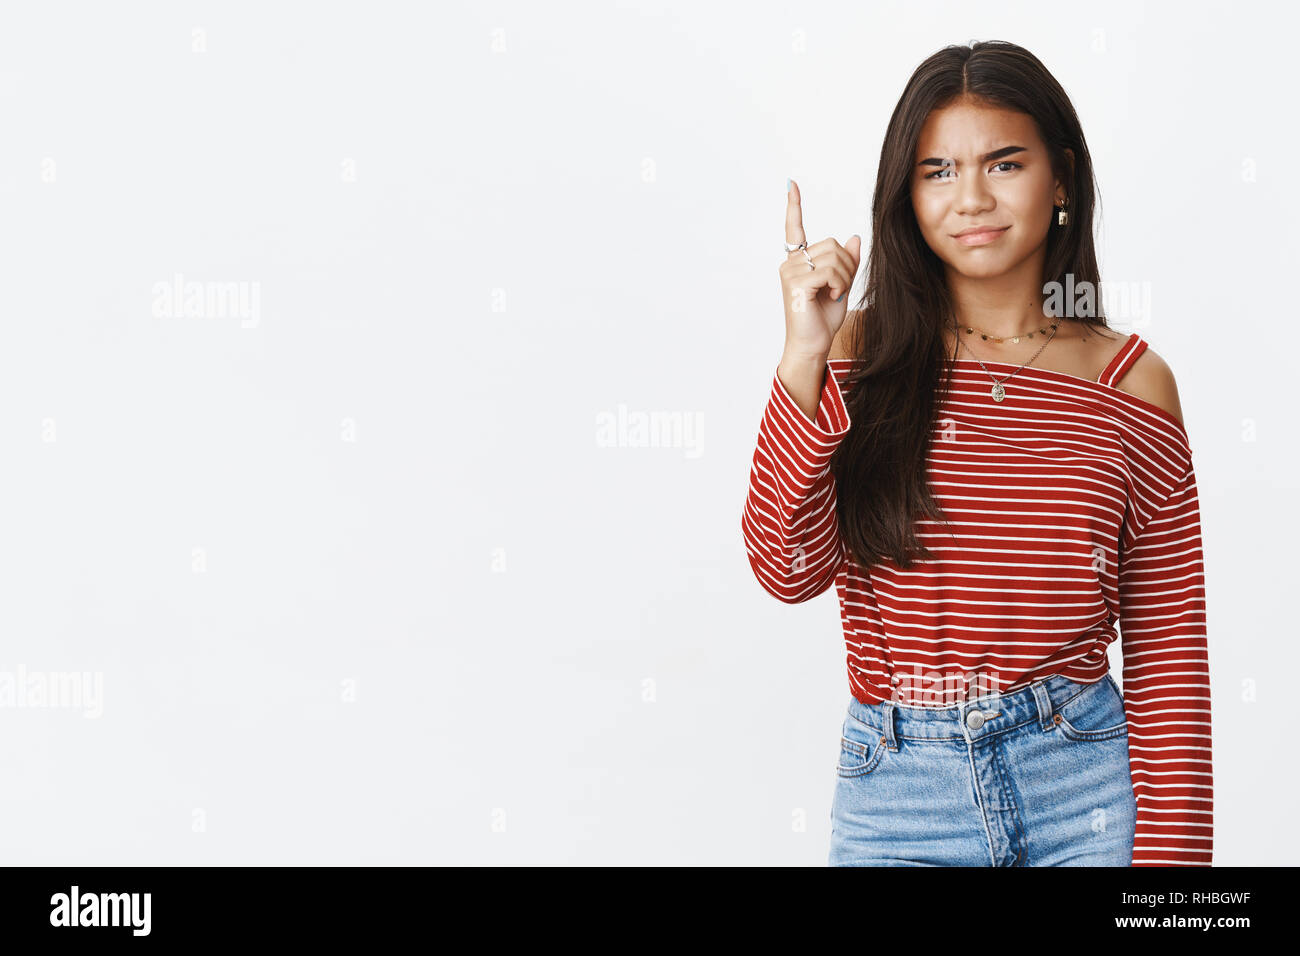 Displeased and gloomy young female adolescent grimacing from sadness of regret making disappointed face showing number one or pointing up at something - Stock Image